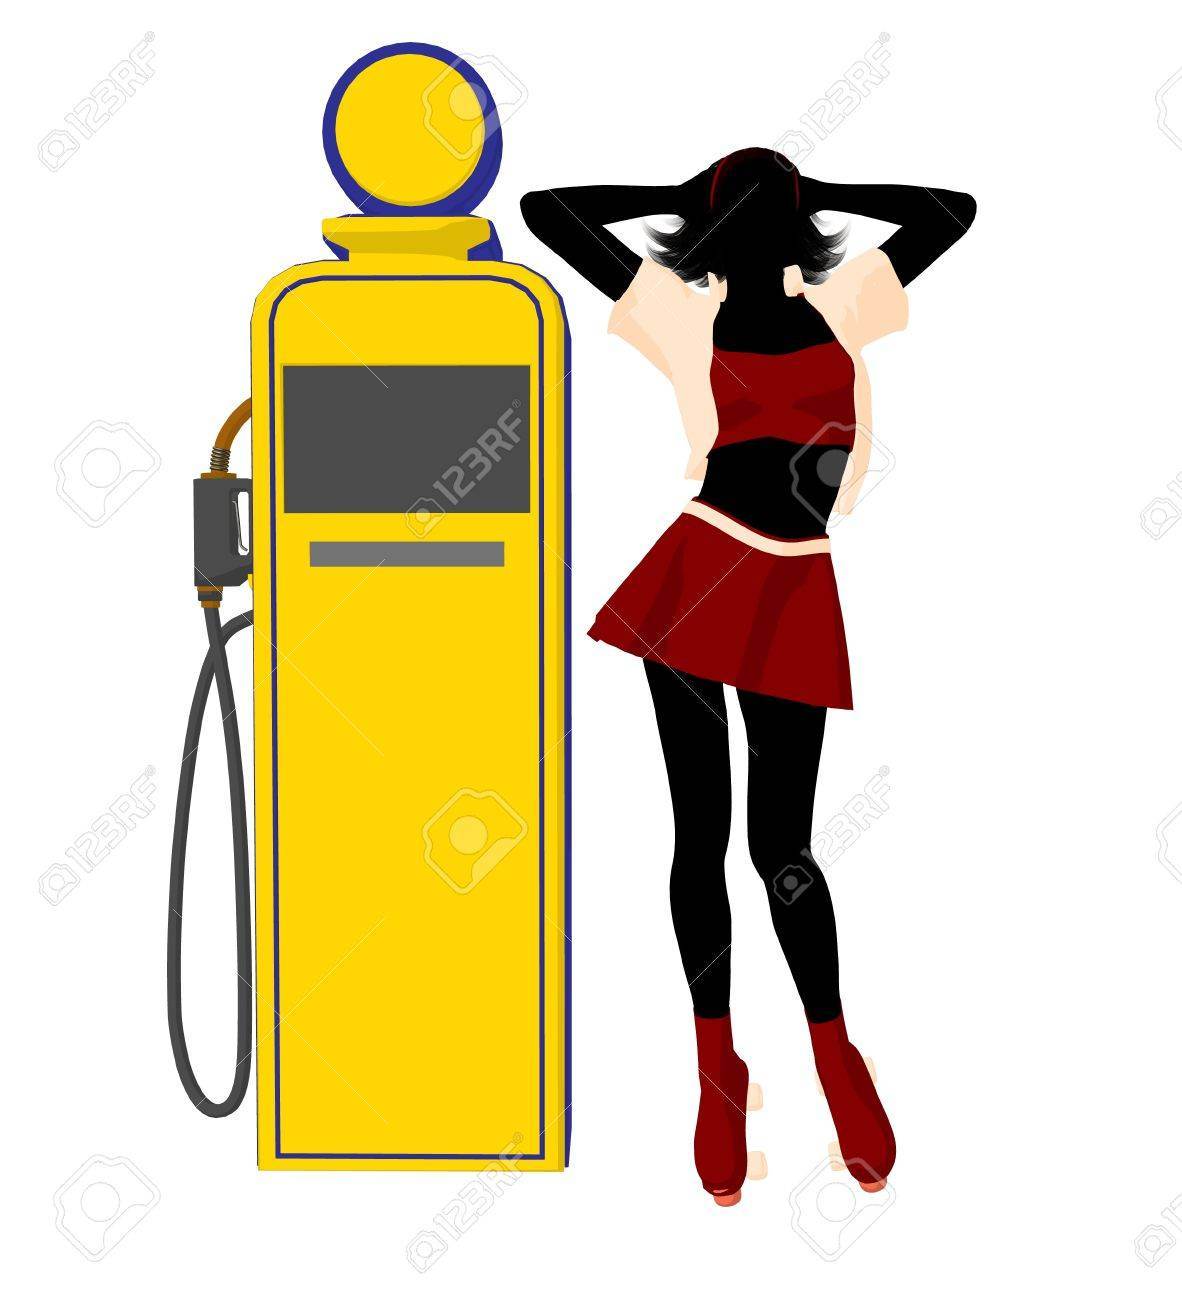 Girl on roller skates standing near a gas pump silhouette on a white background Stock Photo - 7942960